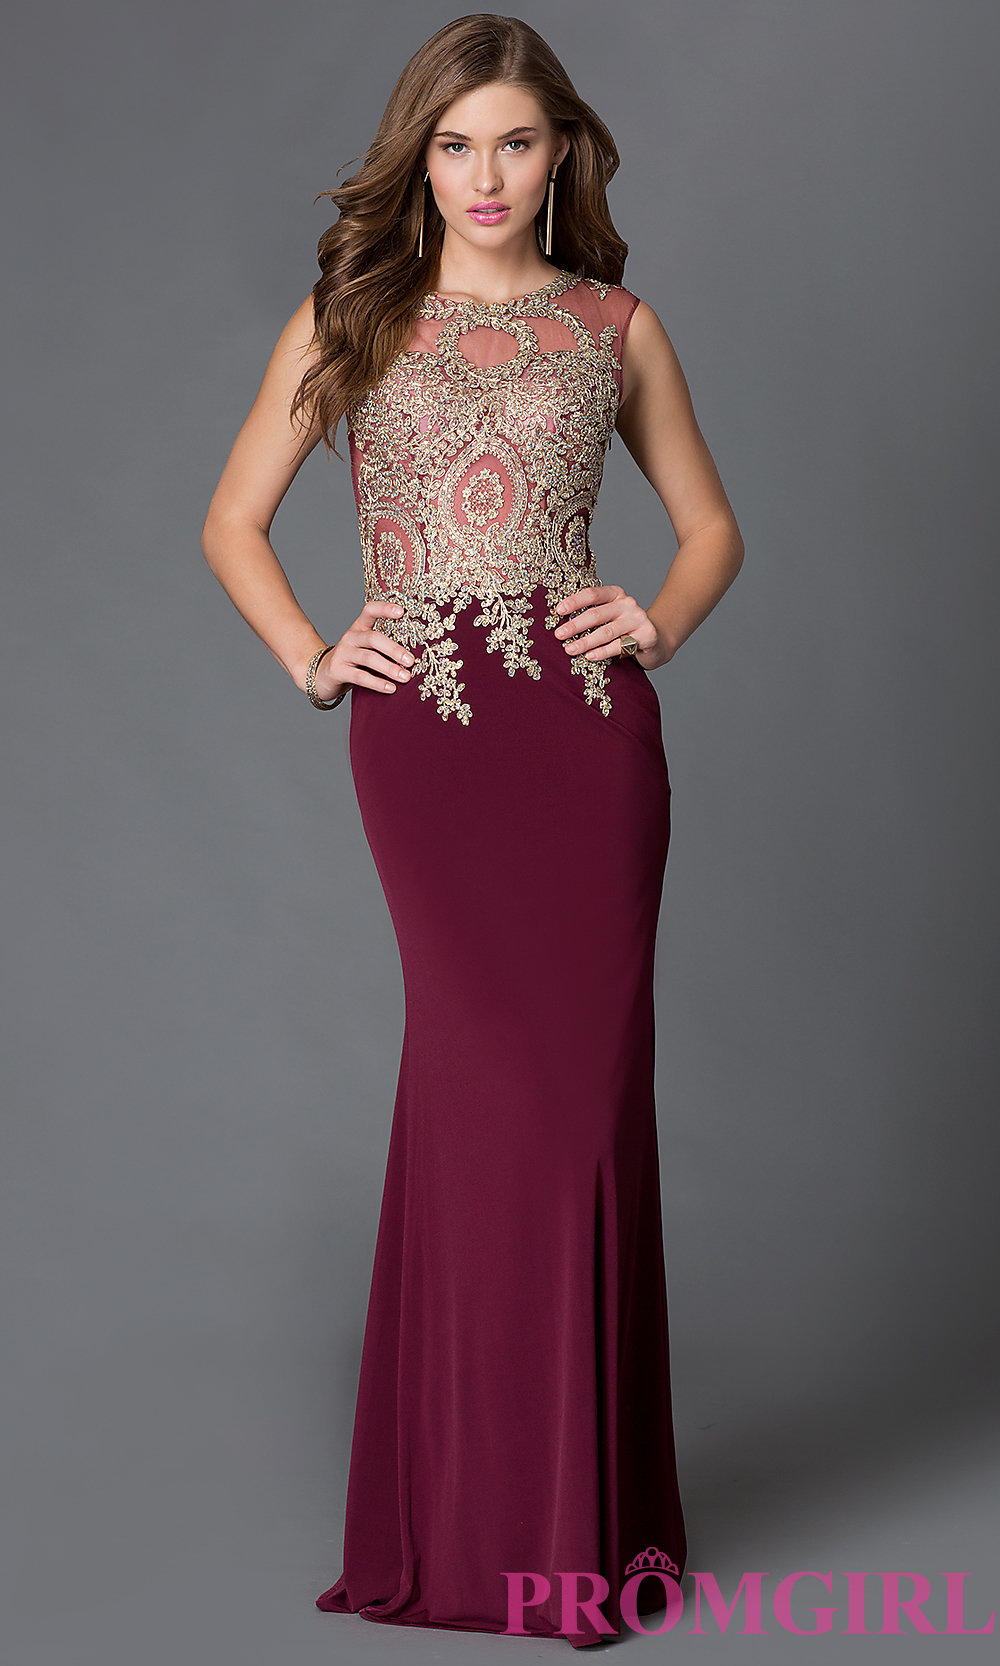 The latest evening dresses for women are available at a reasonable price. The evening wear is stitched using latest accessories and hence a woman looks trendy. They are available in several dark shades such as black, indigo, purple, dark red, etc.